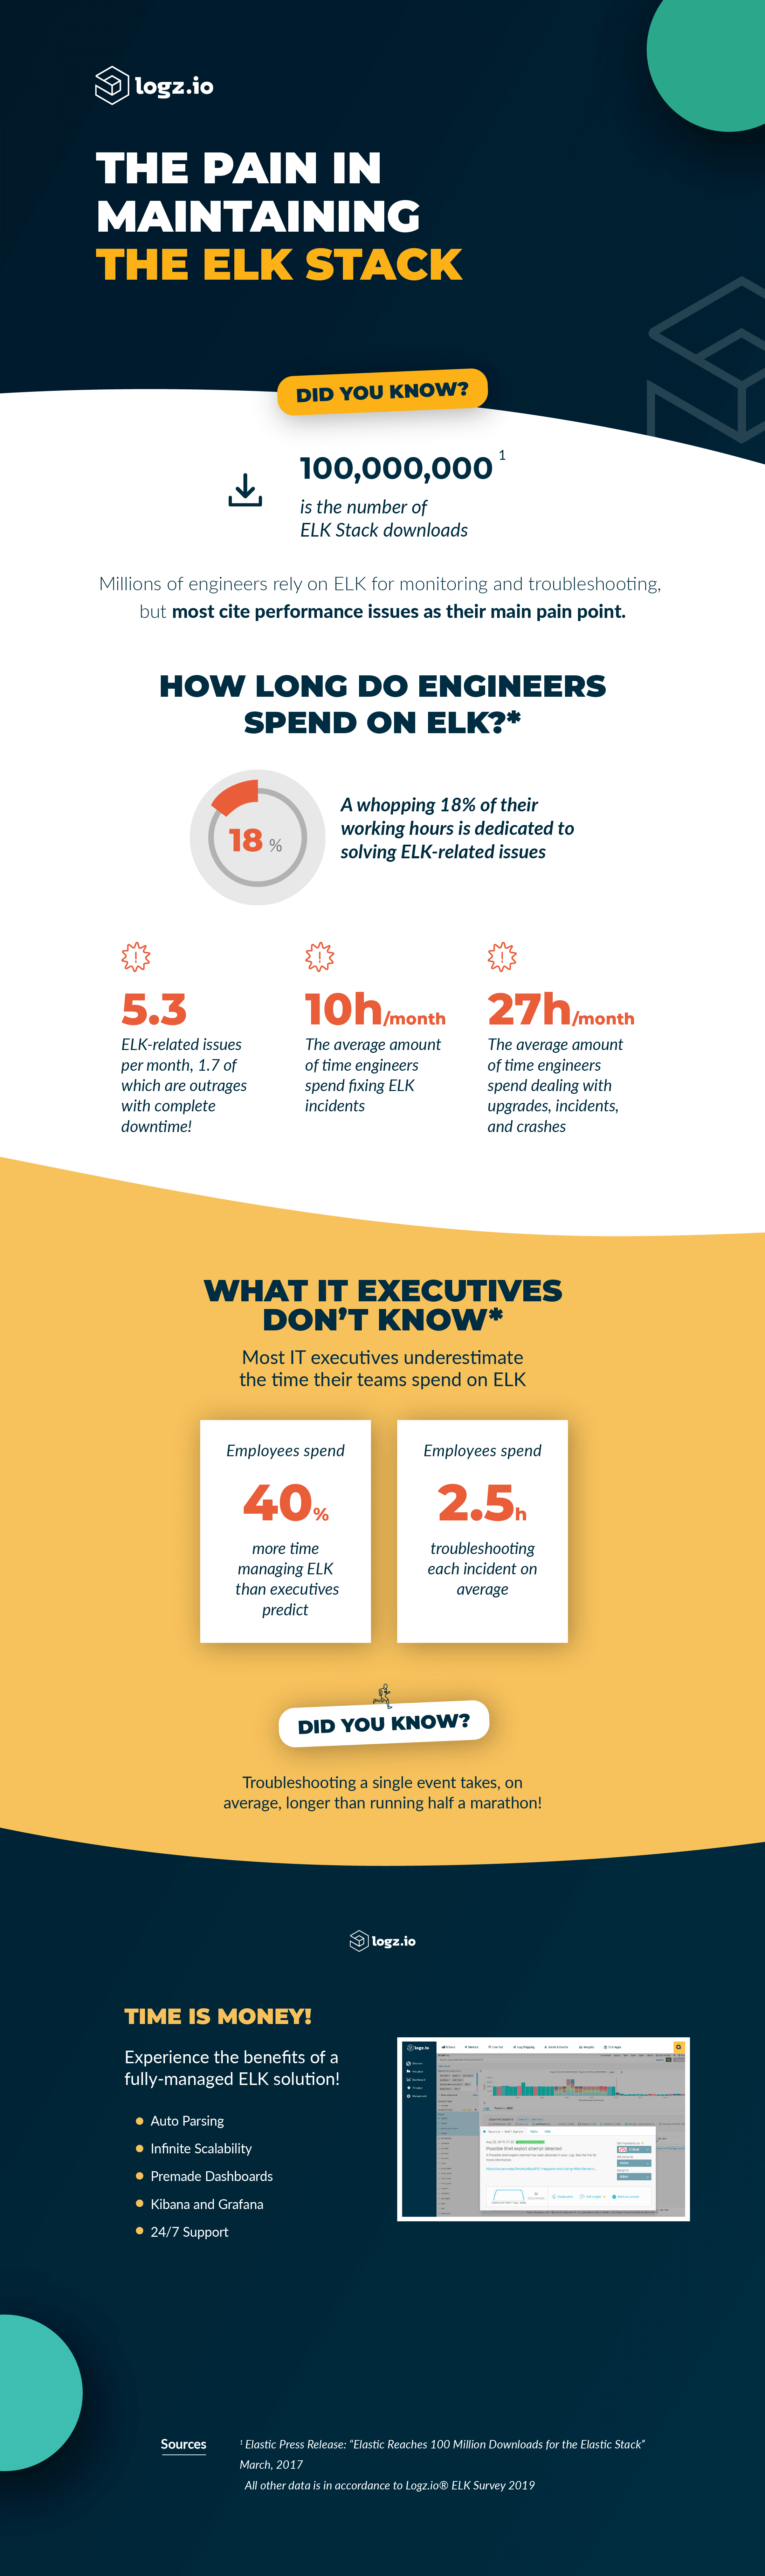 Infographic about the pain in maintaining the ELK Stack